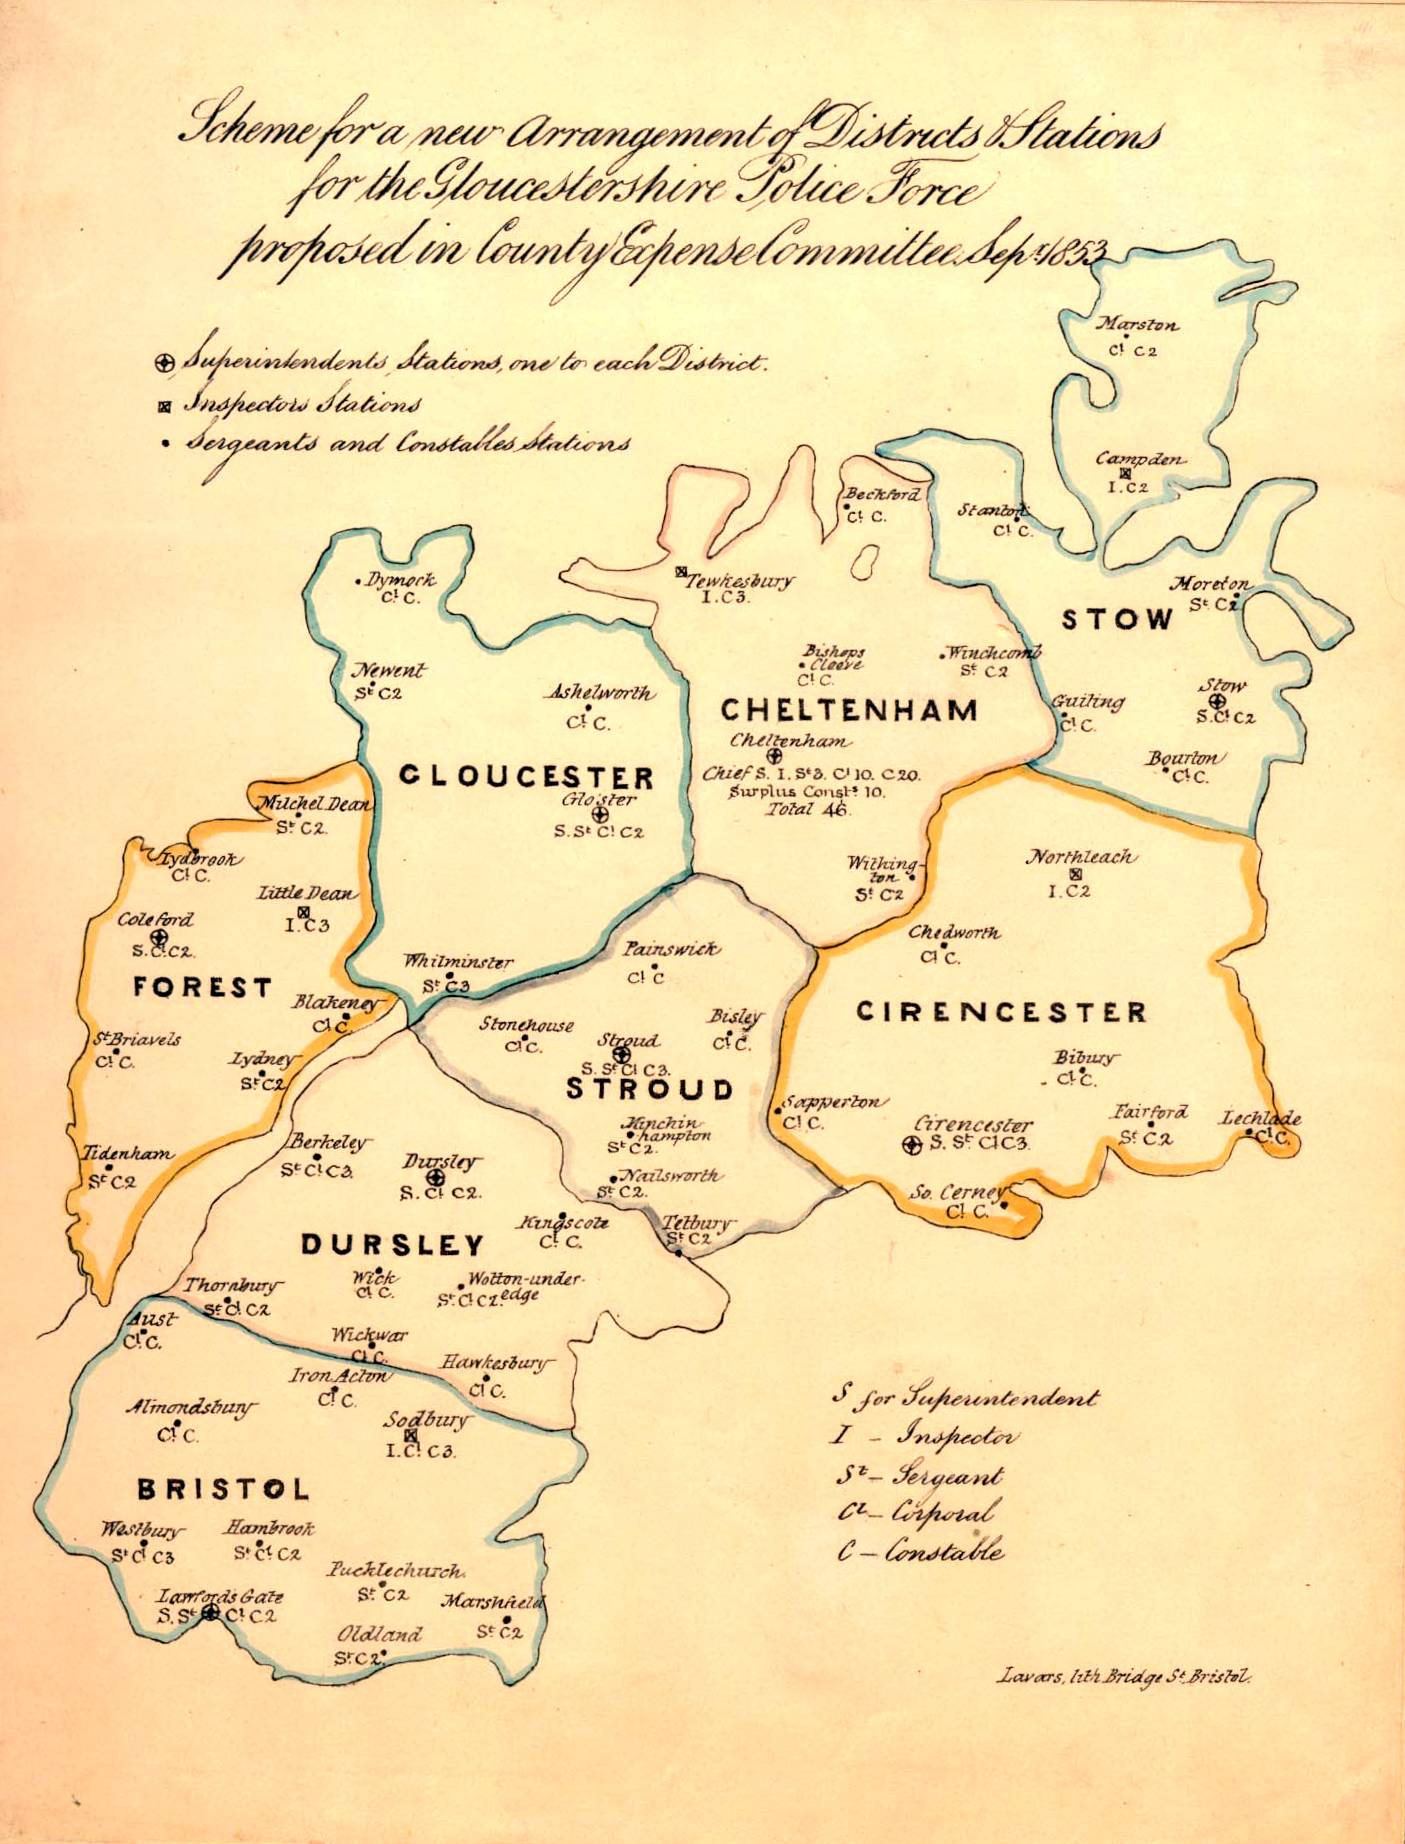 Districts and Stations of Gloucestershire Police in September 1853 and establishment at each station. (Gloucestershire Police Archives URN 10)